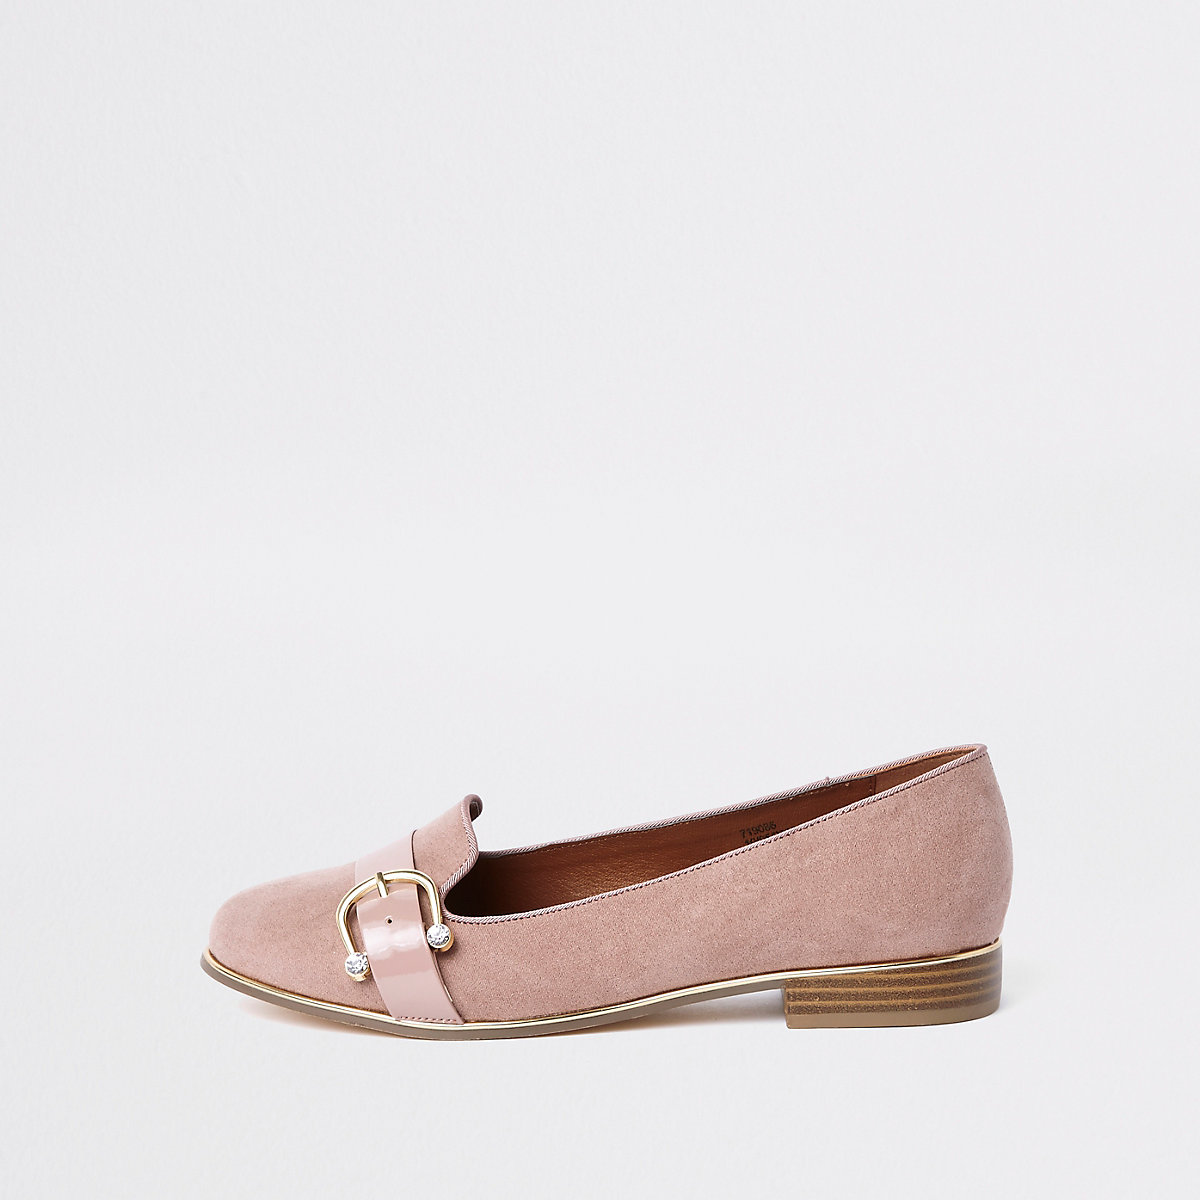 Beige wide fit diamante buckle ballet shoe